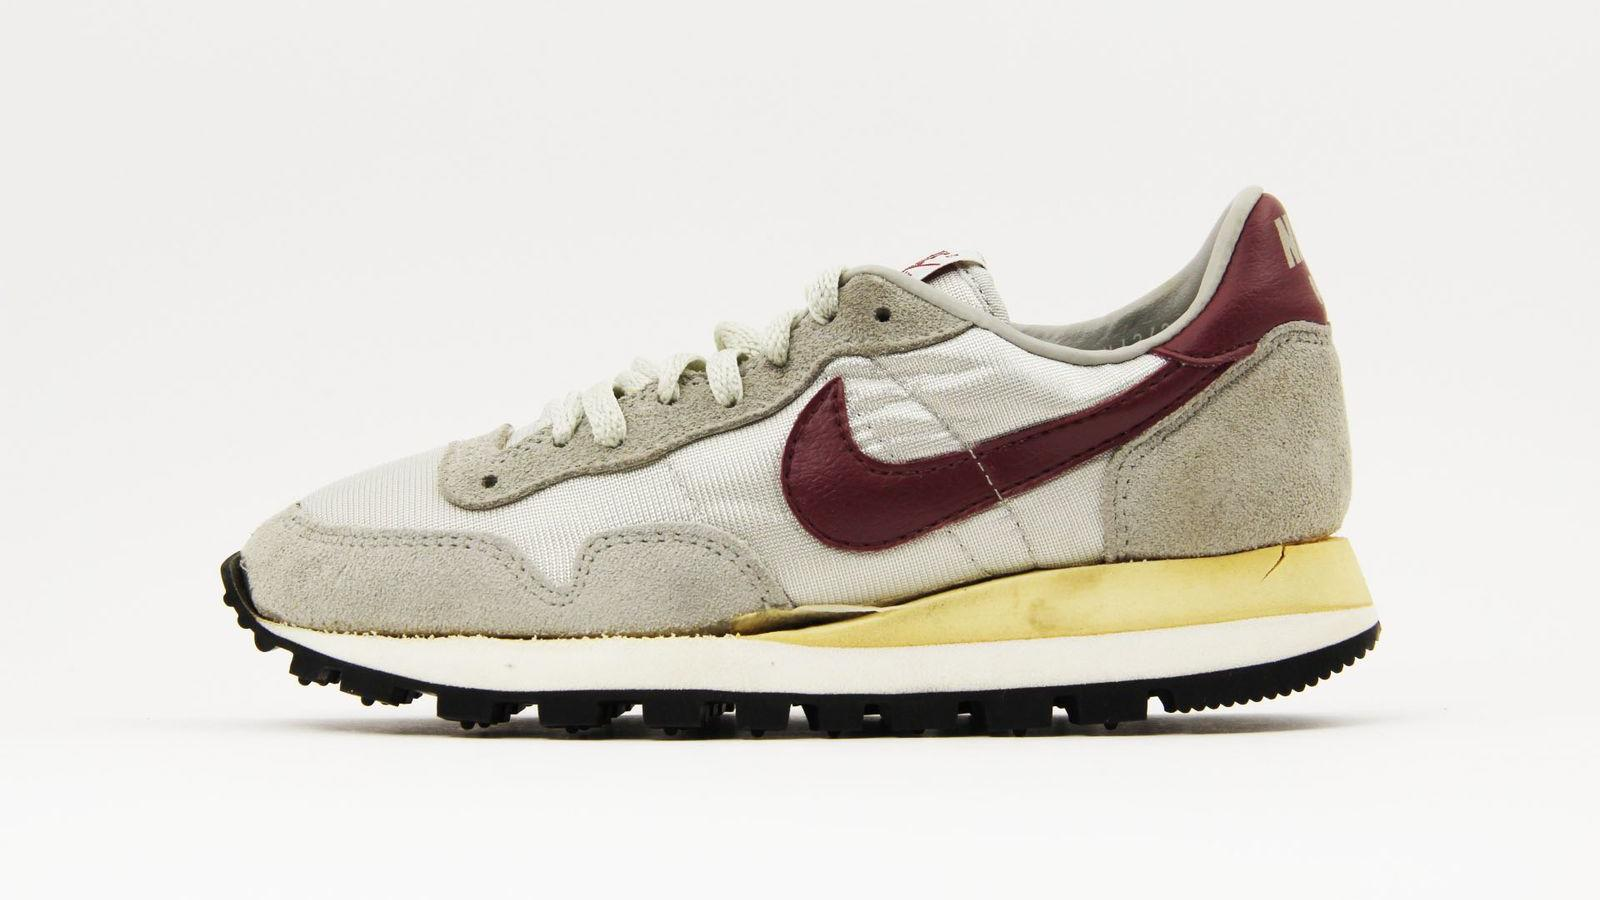 Nike Air Zoom Pegasus History and Facts - Nike News 1f6721608